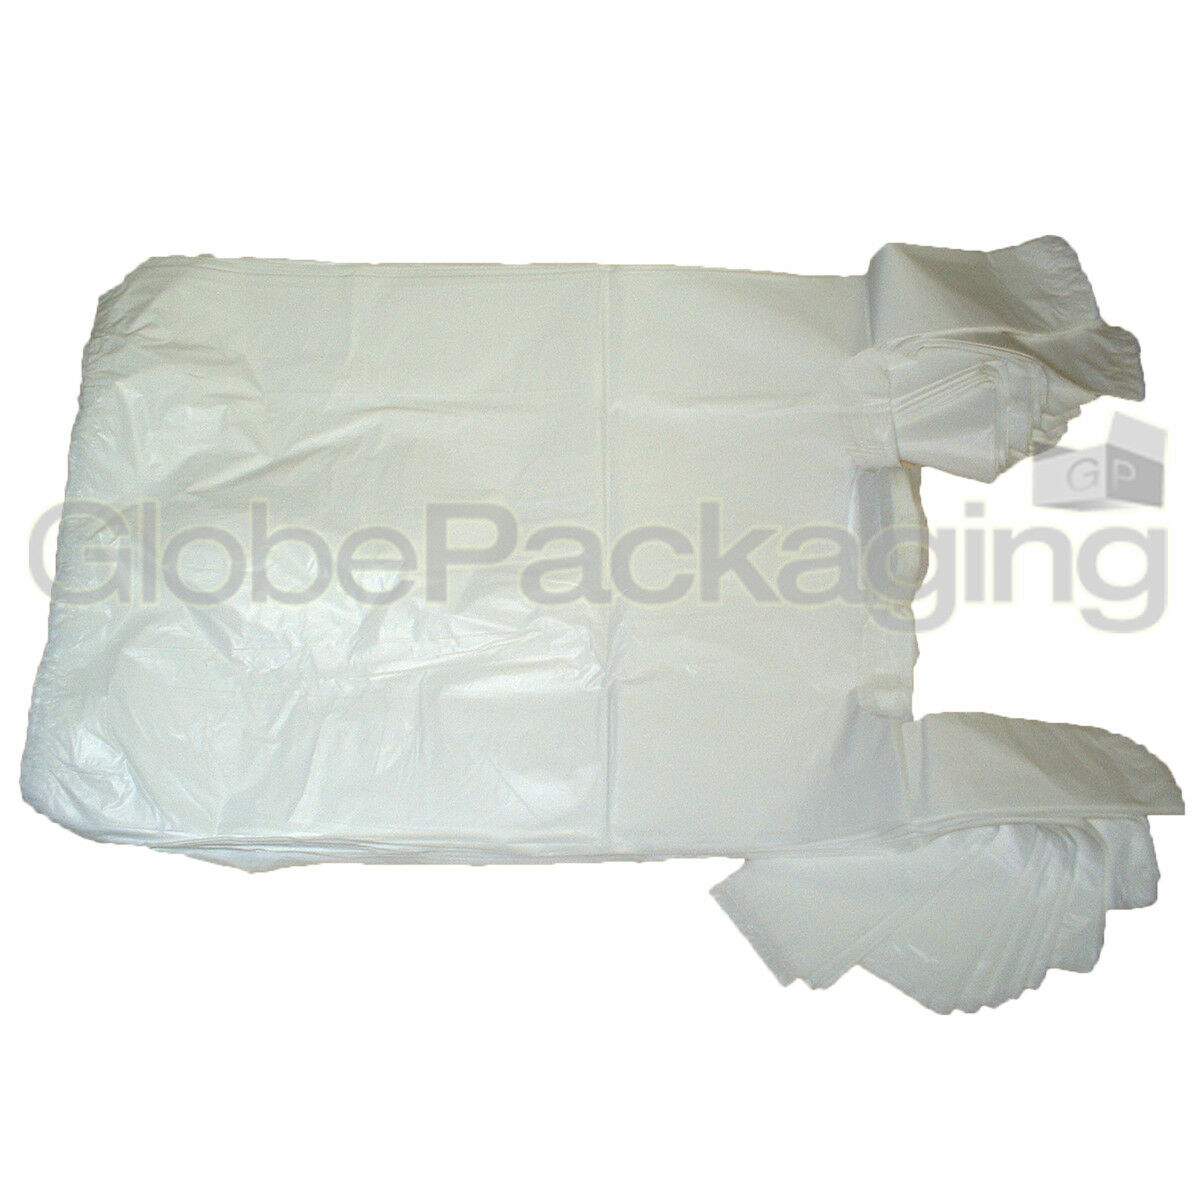 """500 x WHITE PLASTIC VEST CARRIER BAGS 10x15x18/"""" SMALL STRONG 15MU *OFFER*"""